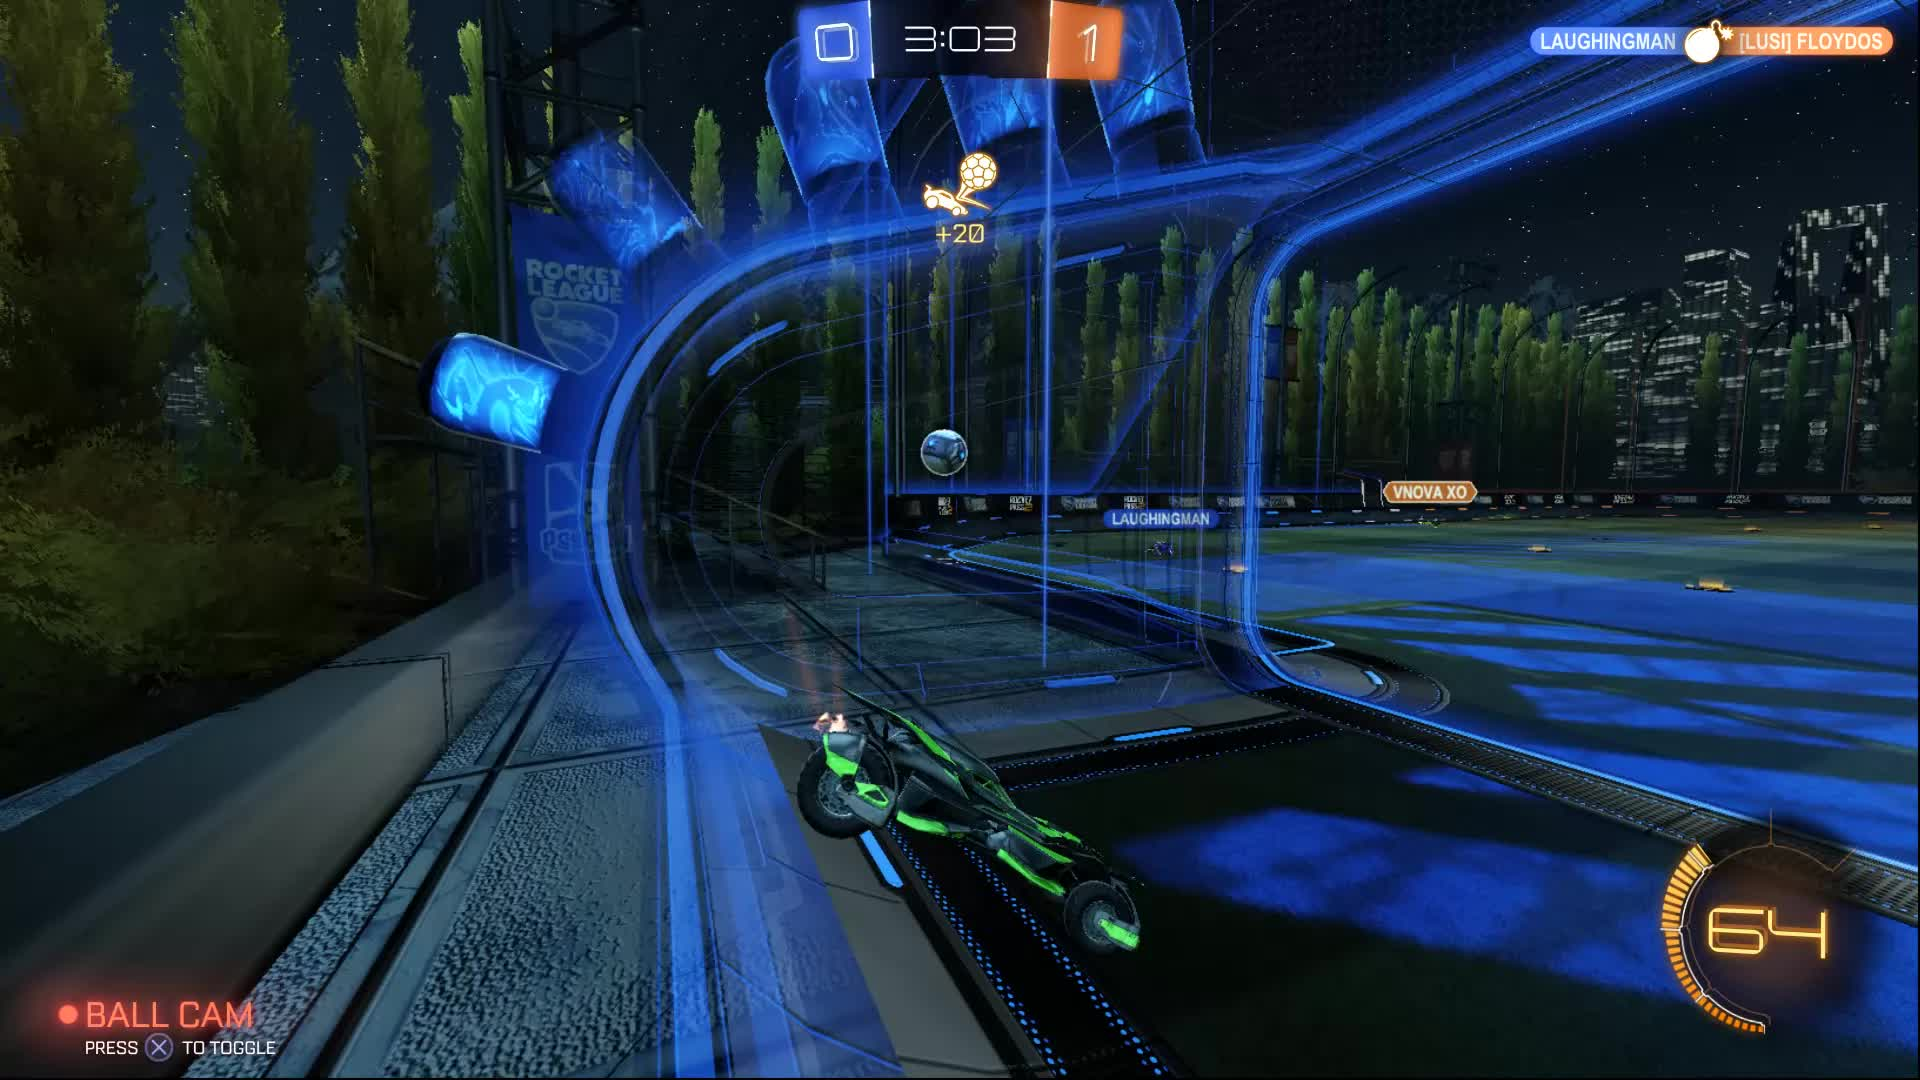 RocketLeague, sigh potato internet GIFs